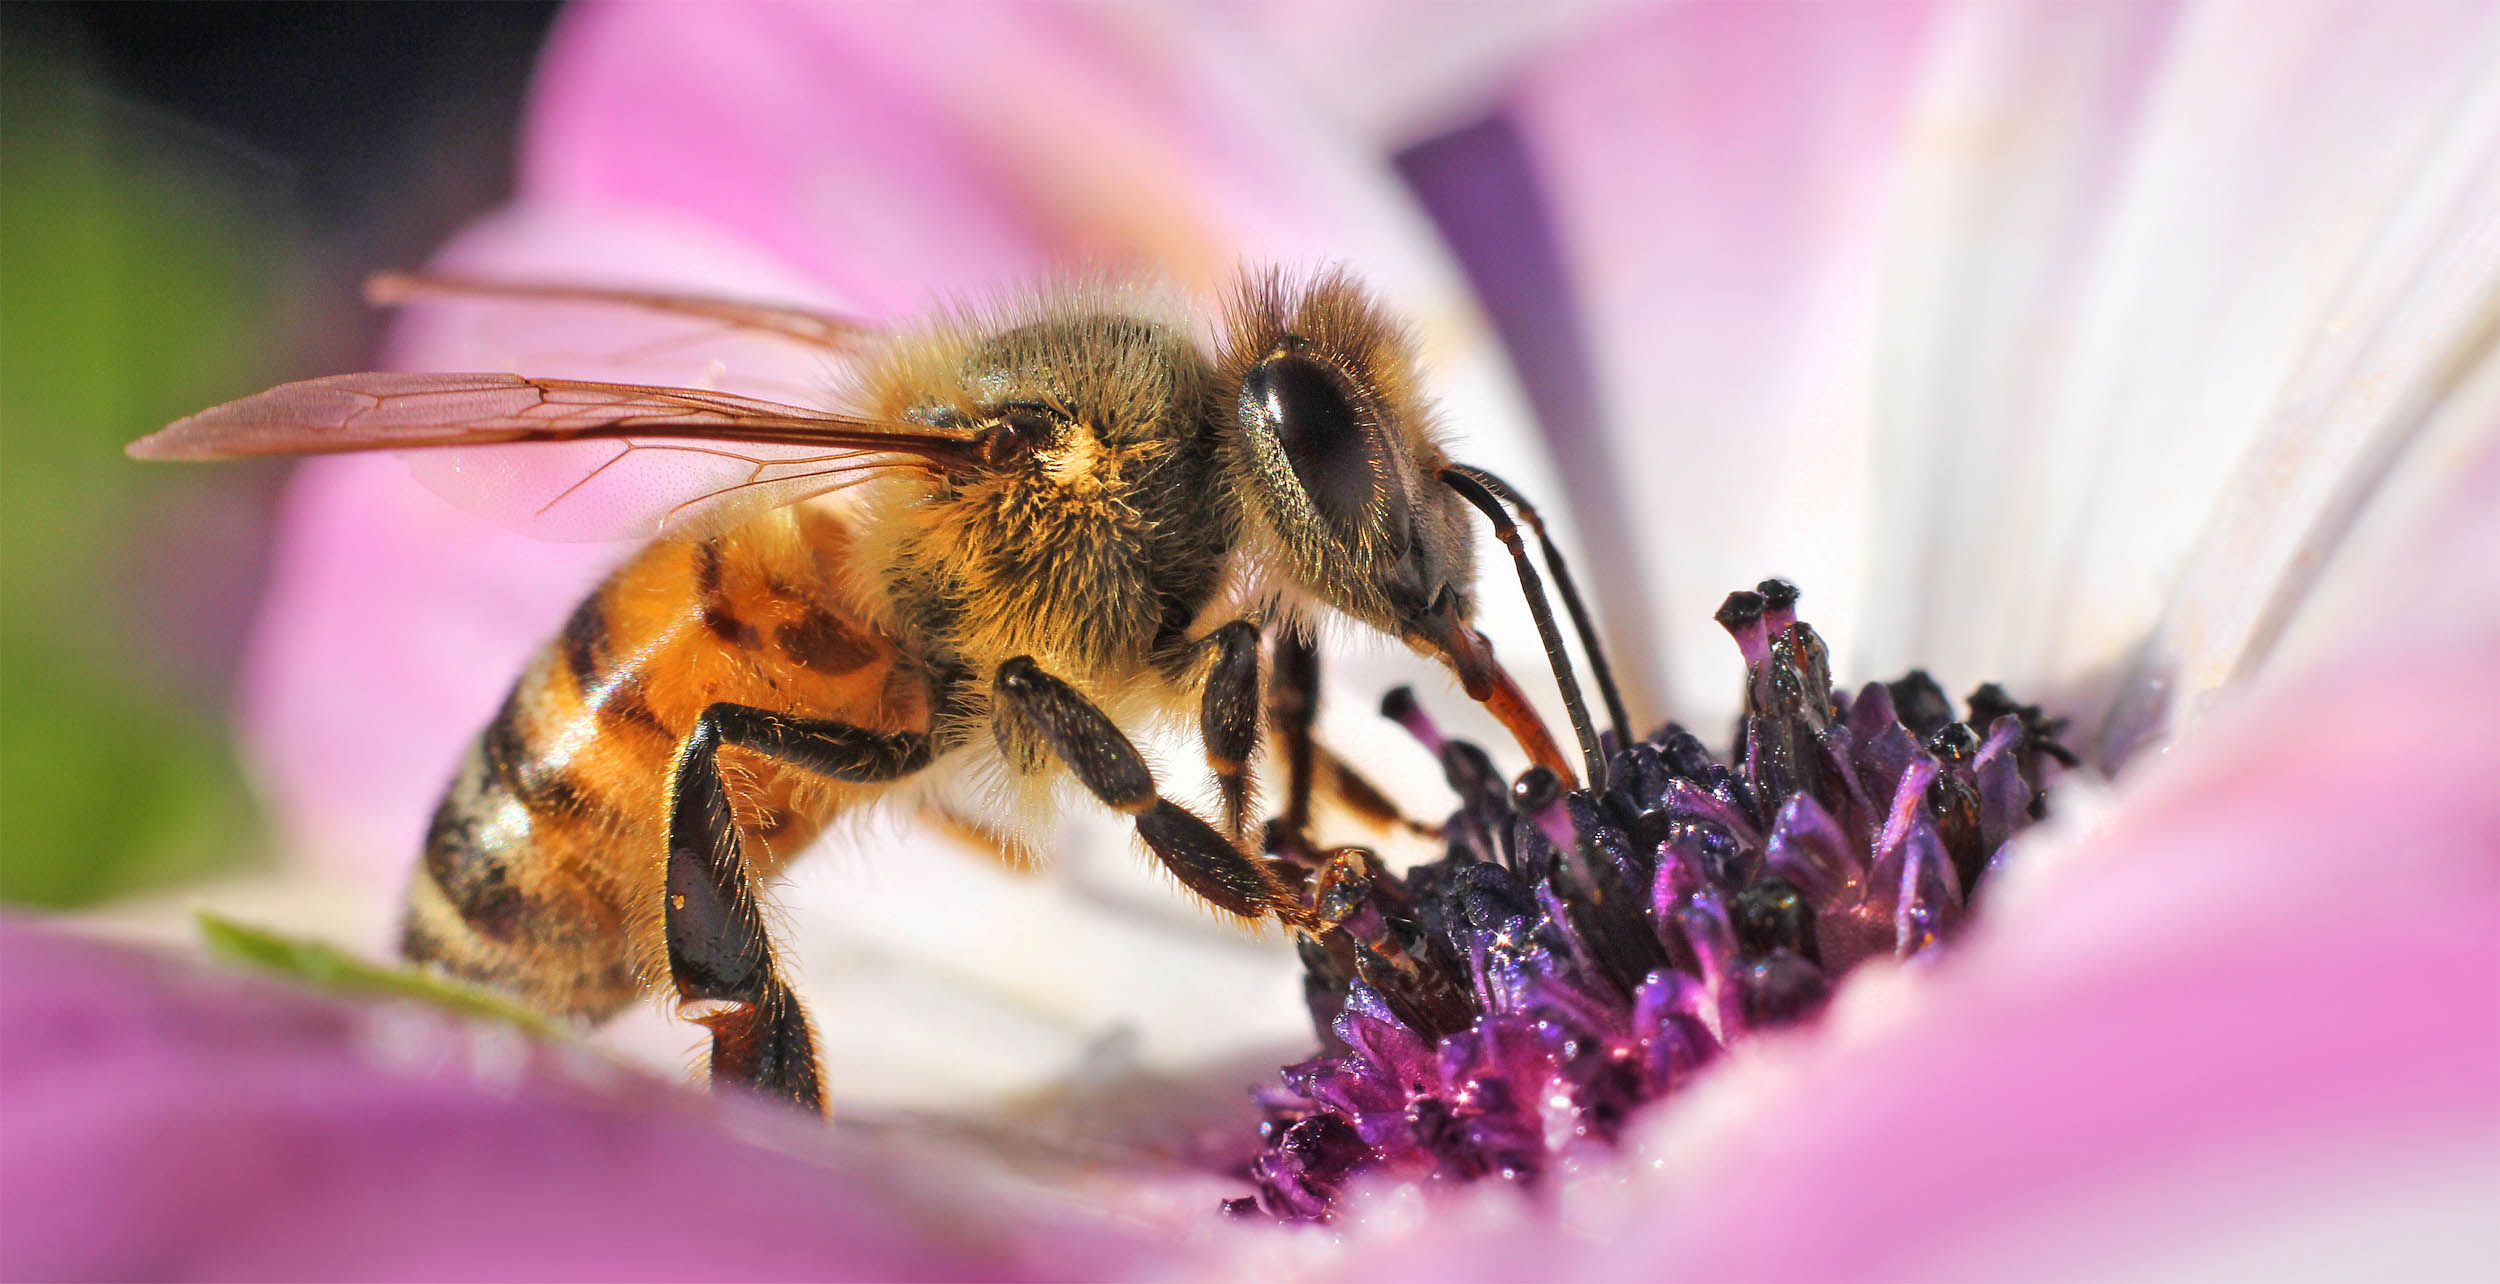 Honeybees threatened by disease from colony collapse disorder is bad news for beekeepers as 2015's brief bump in honeybee populations didn't last.